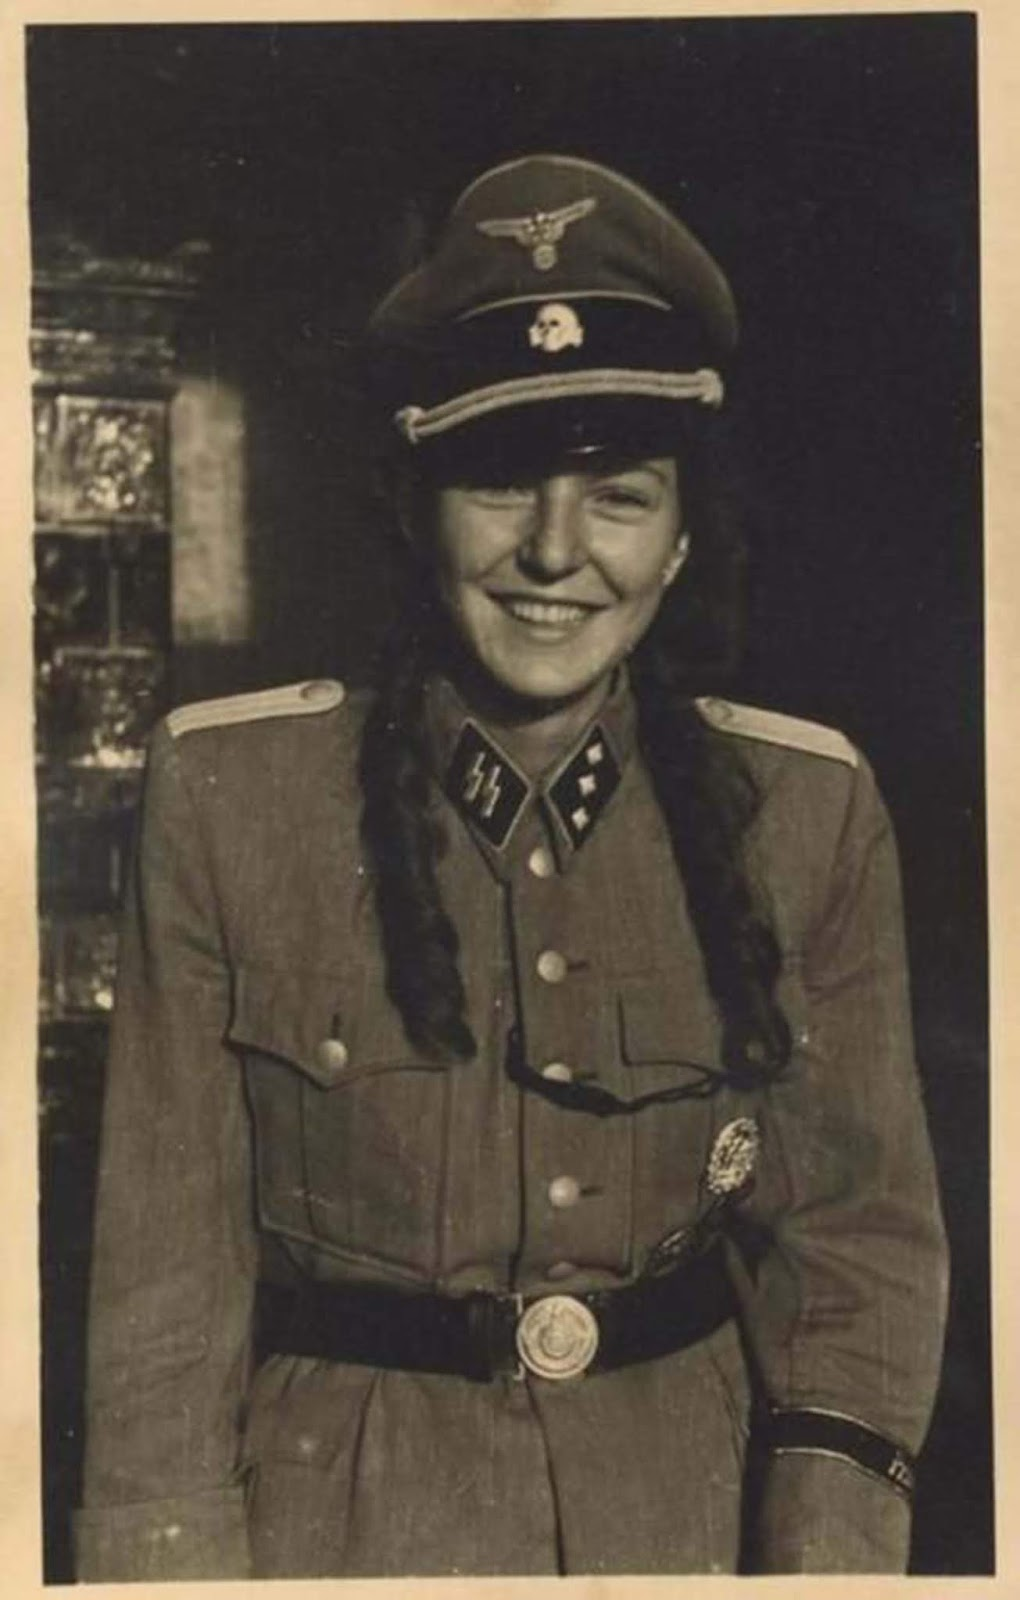 A French girl wearing y she's wearing what appears to be a very authentic SS uniform. Read more on this article: Sleeping with the enemy: Collaborator girls of the German-occupied Europe.